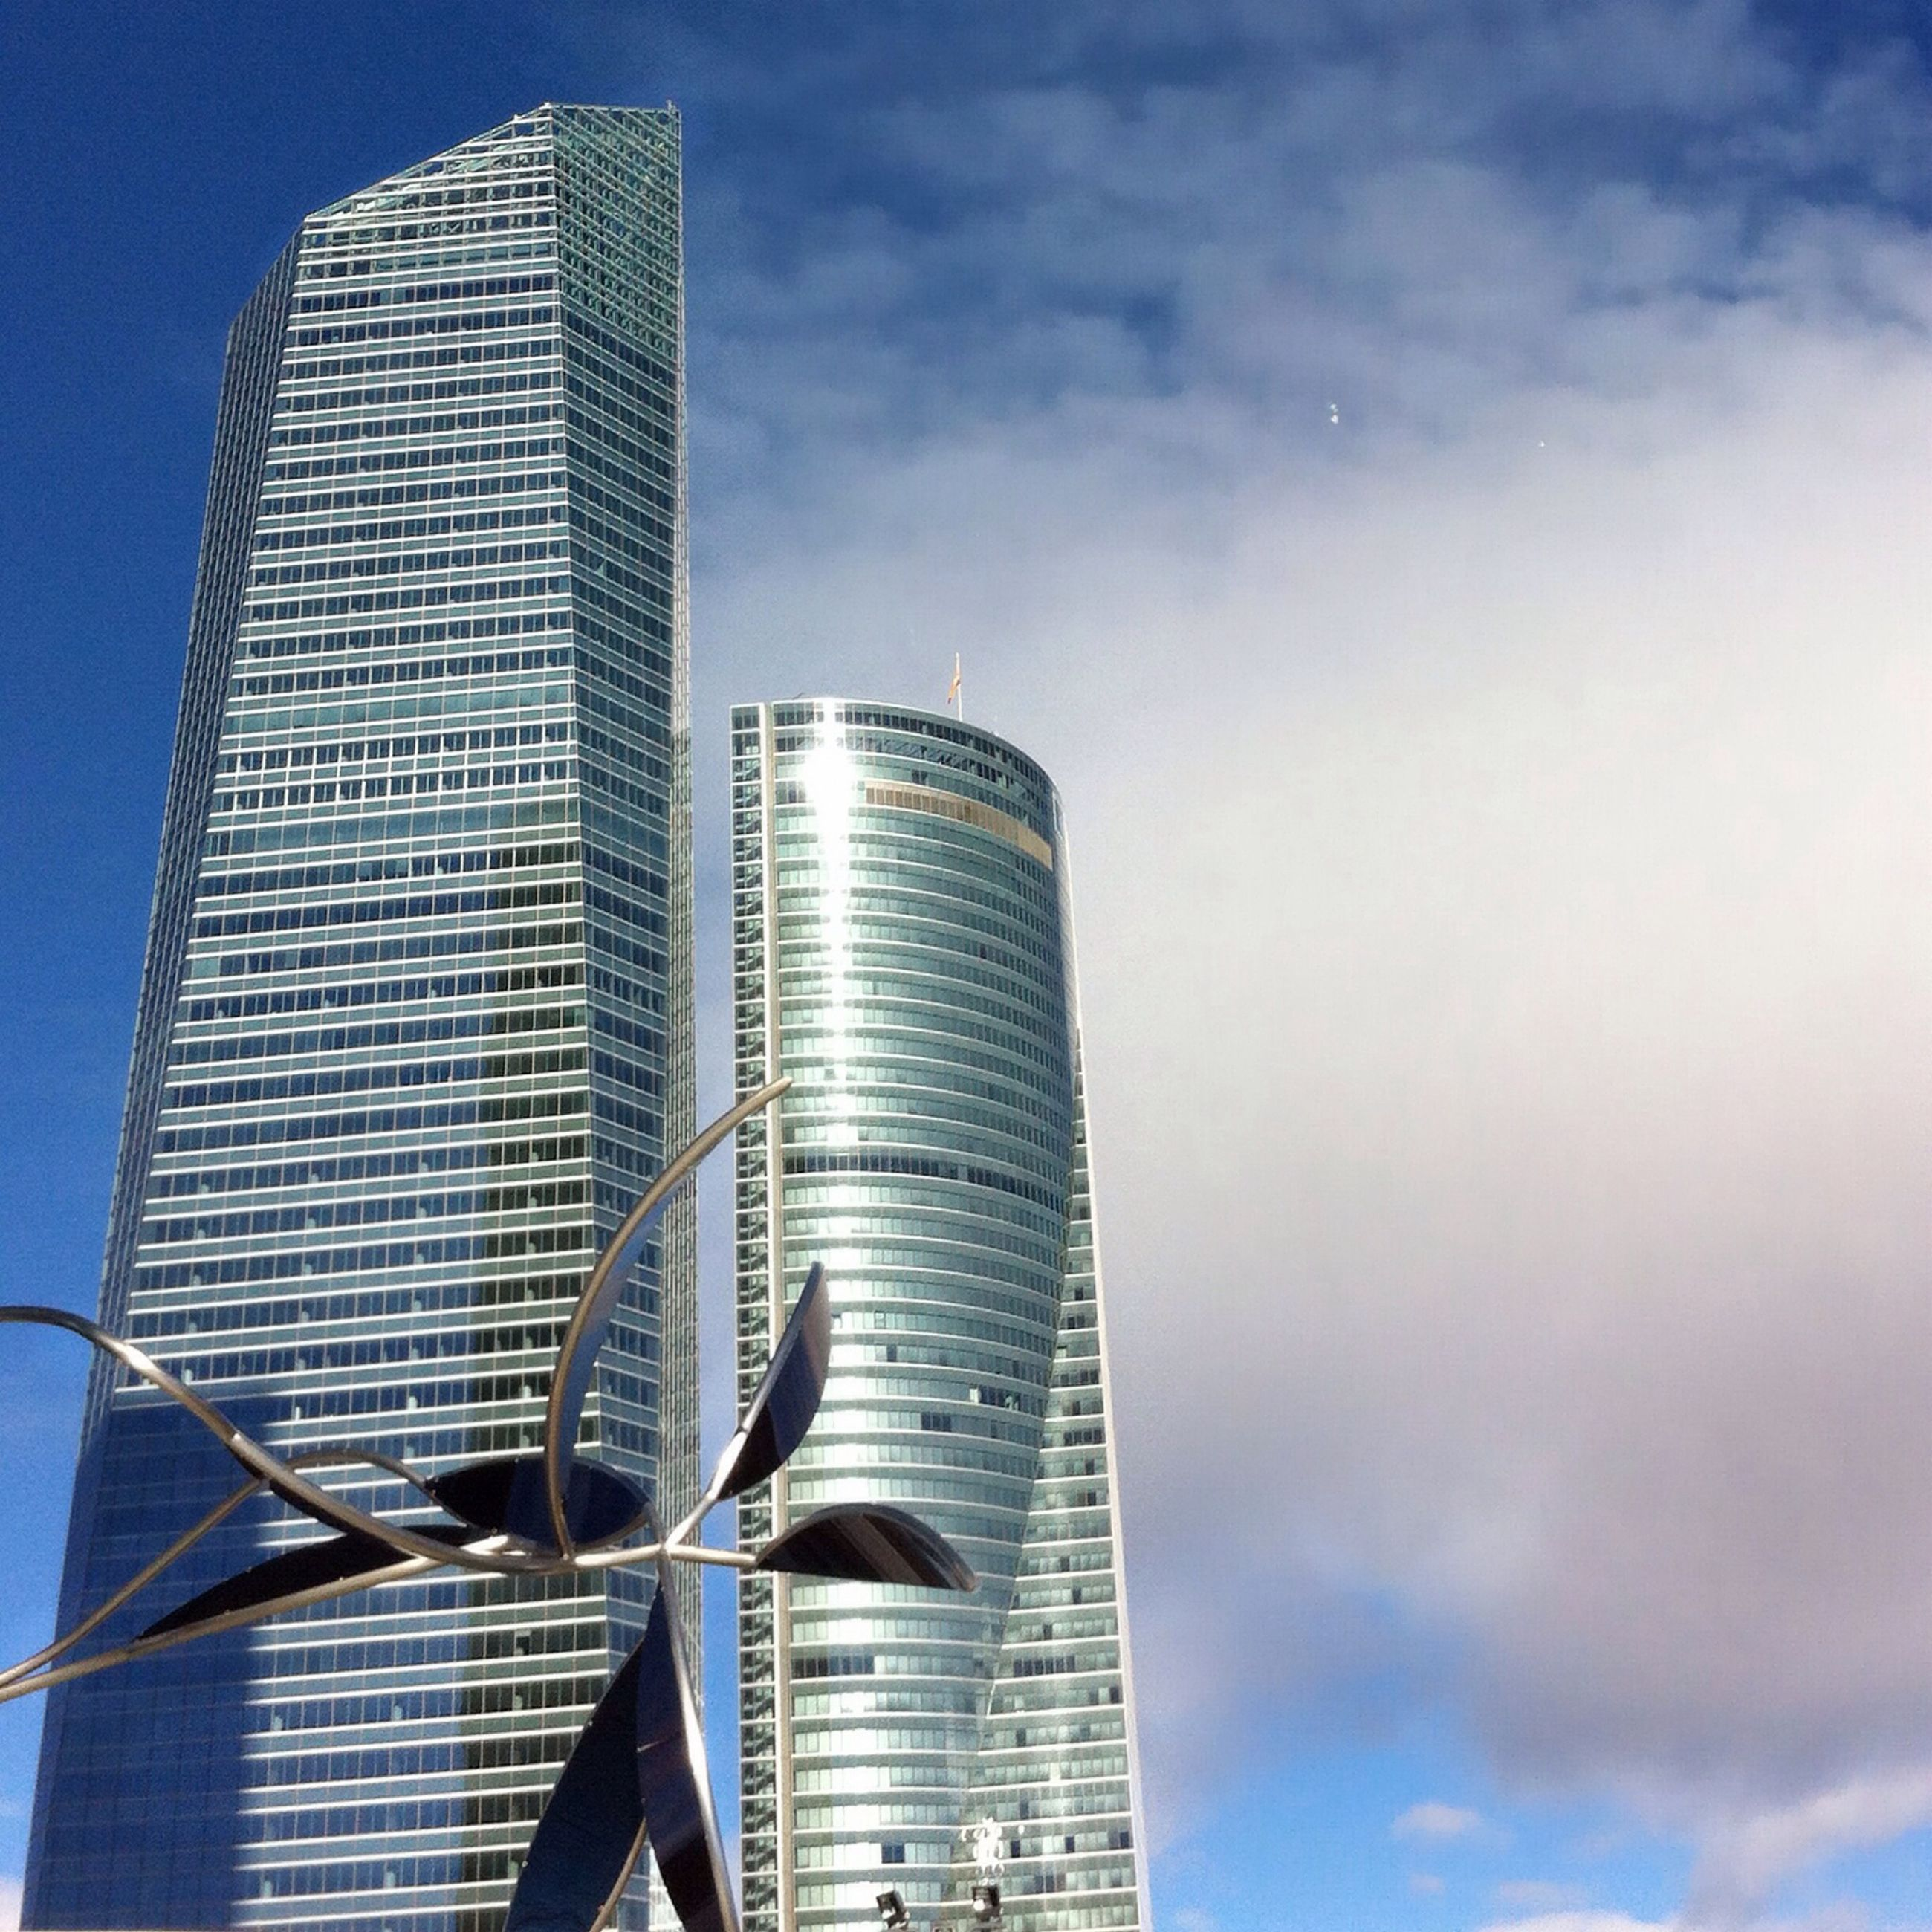 building exterior, architecture, low angle view, built structure, skyscraper, city, modern, tall - high, office building, sky, tower, building, cloud - sky, outdoors, tall, development, glass - material, day, no people, cloud